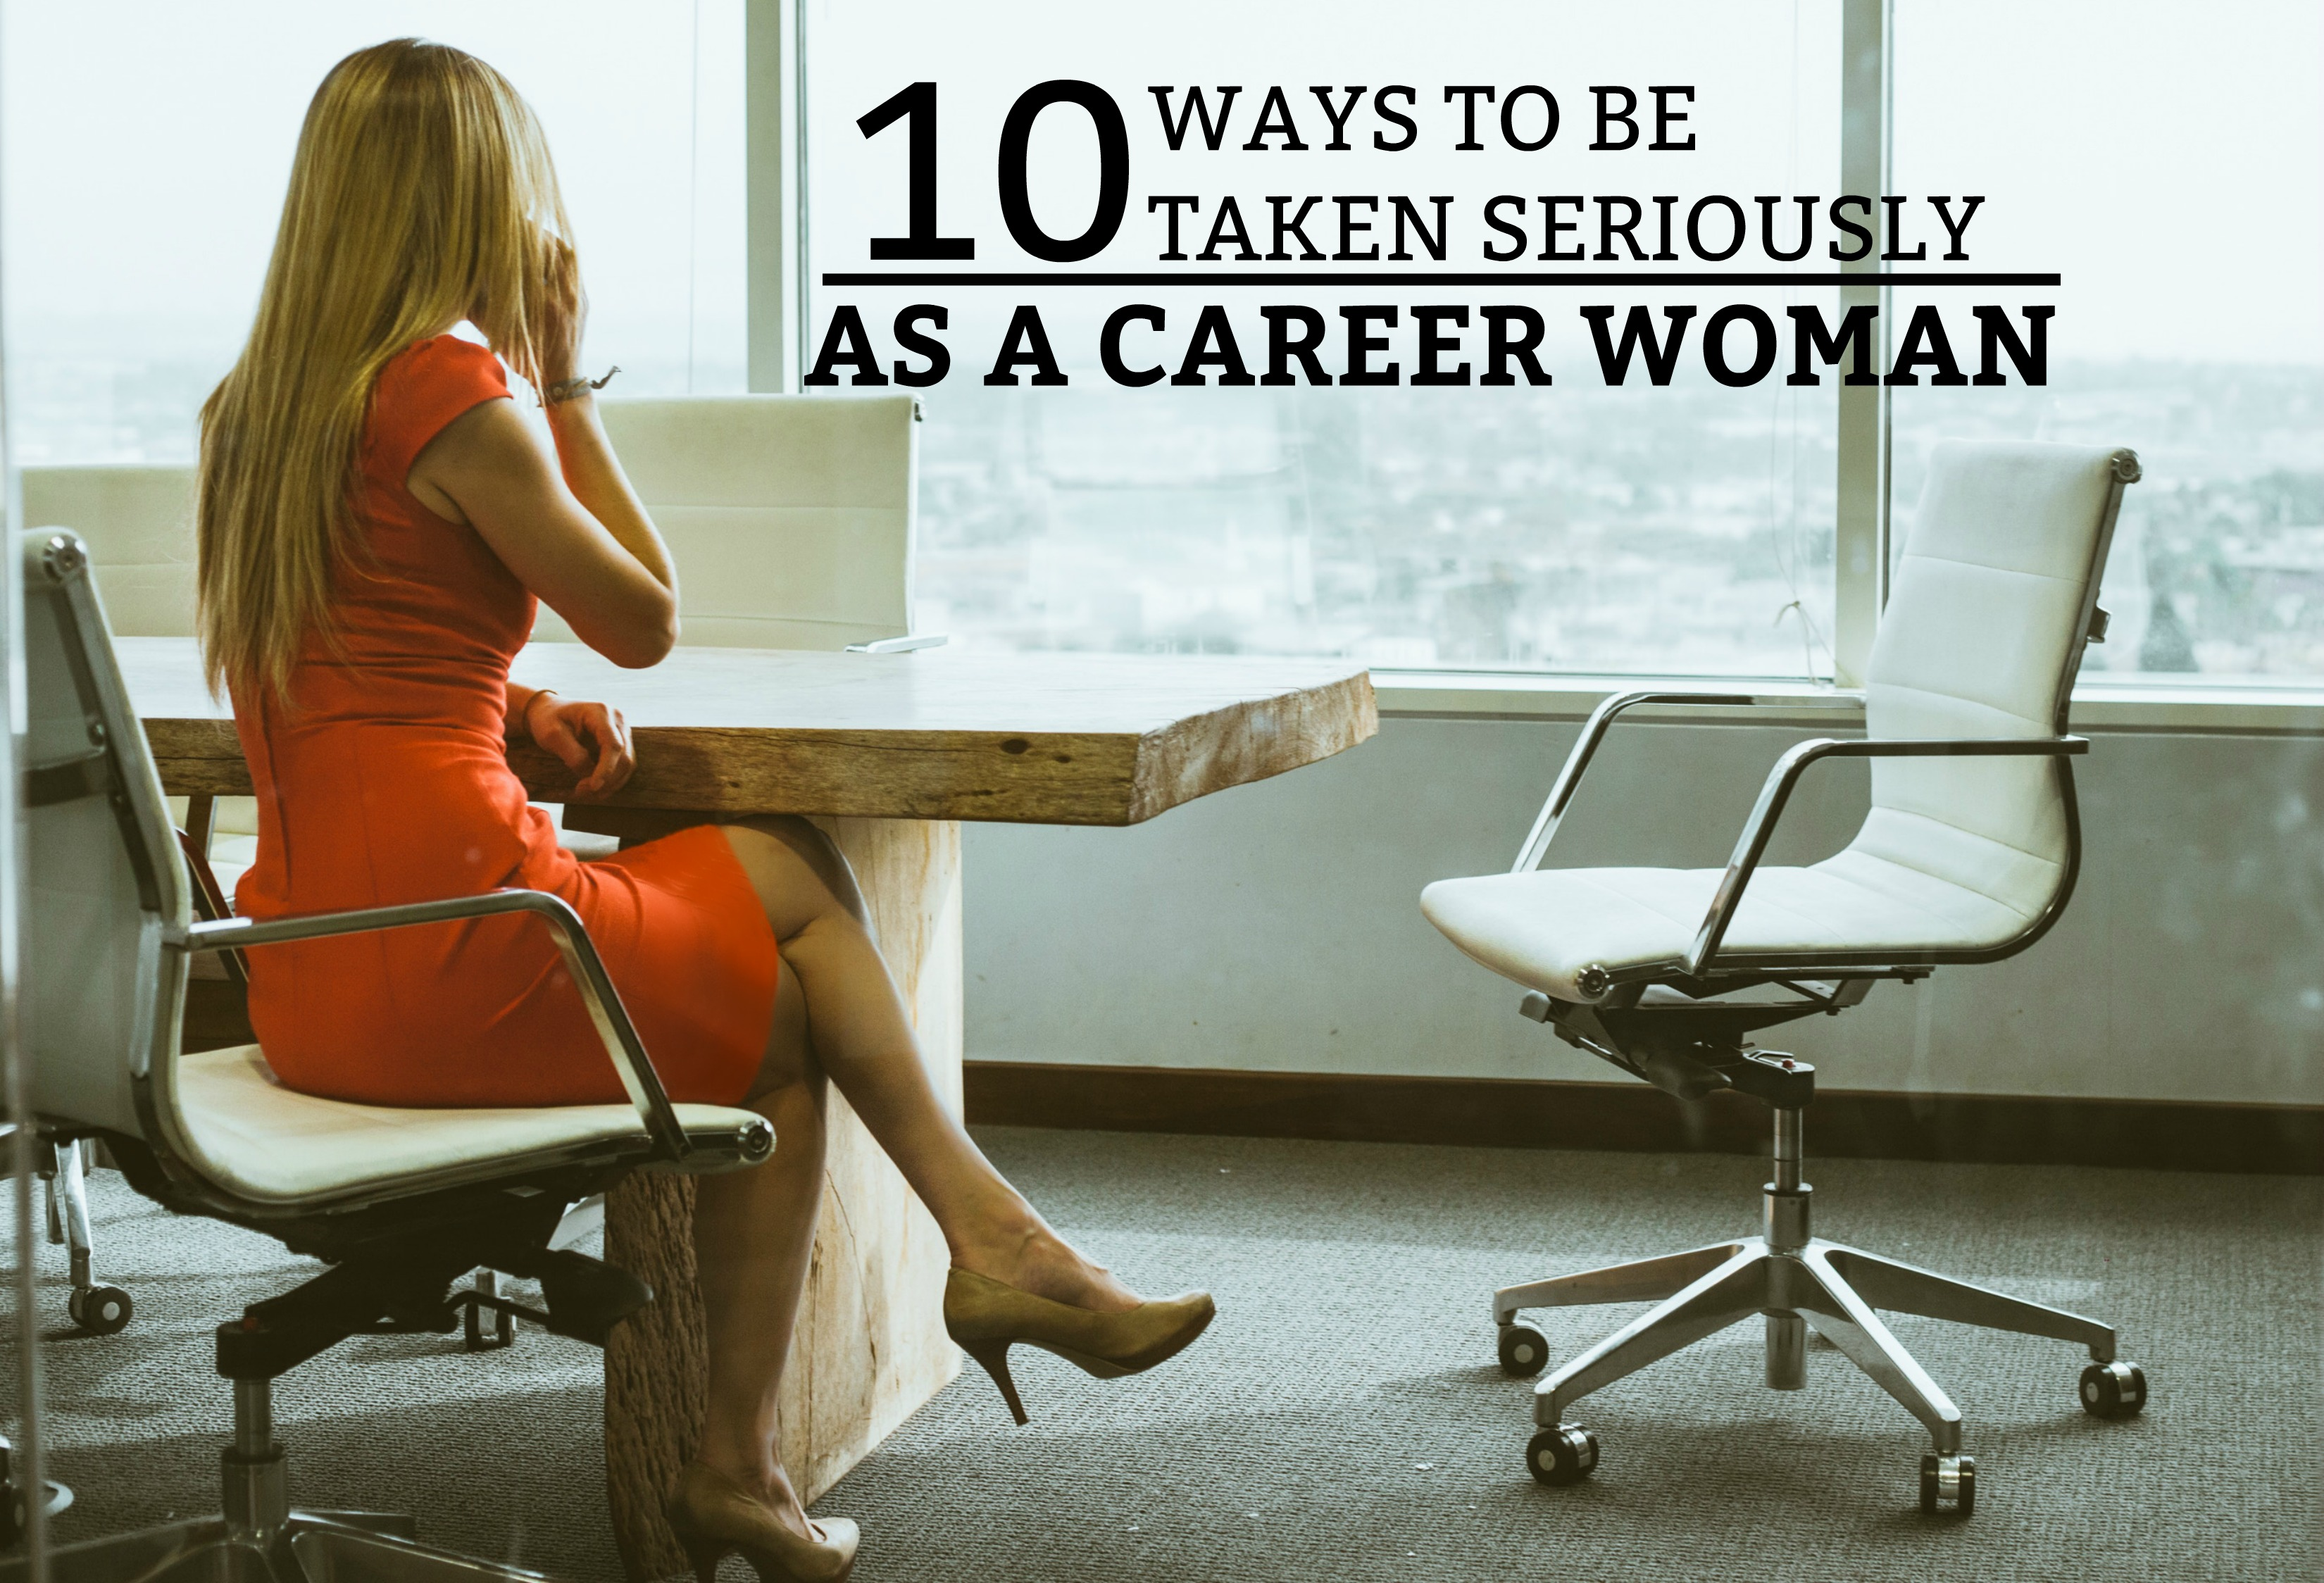 10 Ways to Be Taken Seriously as a Career Woman - A guide on how to present yourself as a business woman. www.tradingaverage.com